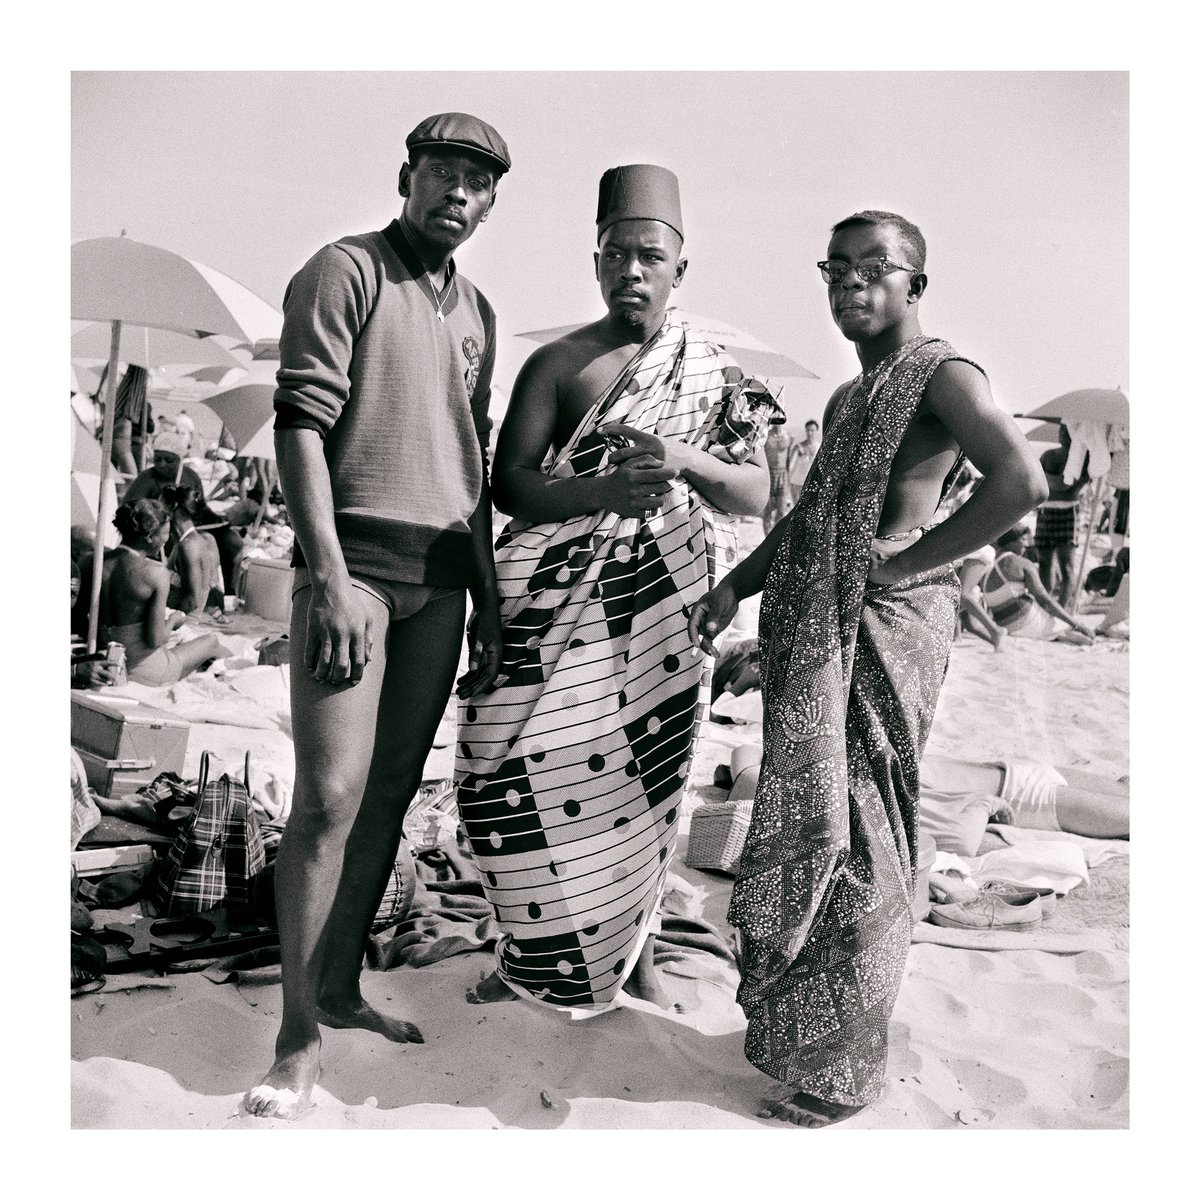 "📸: Kwame Brathwaite, ""Untitled (Riis beach with Jimmy, Kwame and Elombe),"" 1963, printed 2018, archival pigment print, #TangCollection⁠⠀ ⁠⠀ #KwameBrathwaite #BlackIsBeautiful #summer #photography #TangTeachingMuseum #Skidmore  https://t.co/PLGFpjuk1v https://t.co/bmHydaWWso"